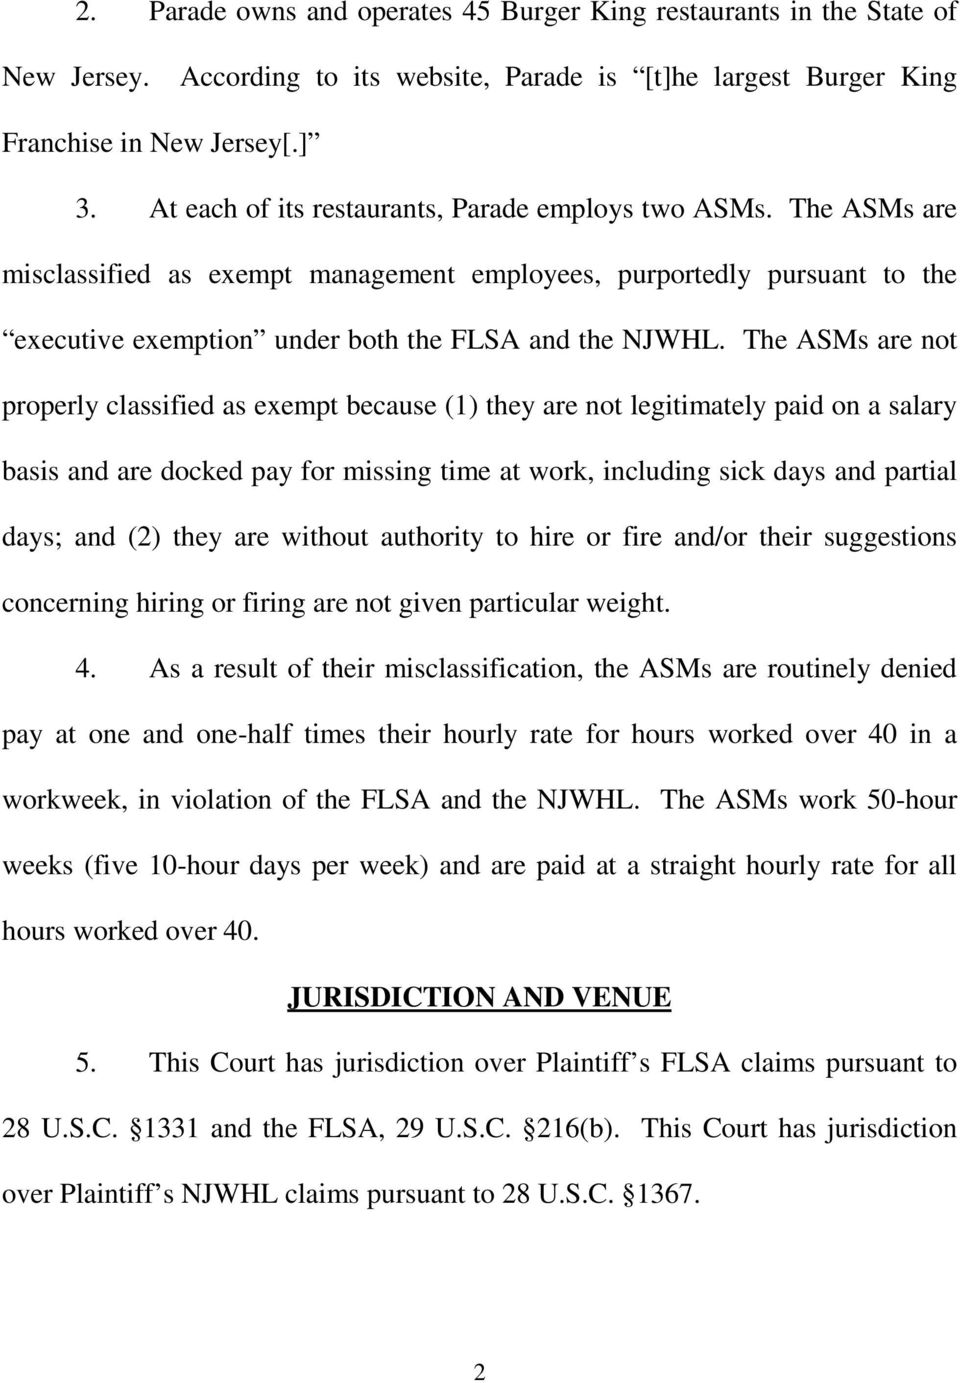 The ASMs are not properly classified as exempt because (1) they are not legitimately paid on a salary basis and are docked pay for missing time at work, including sick days and partial days; and (2)